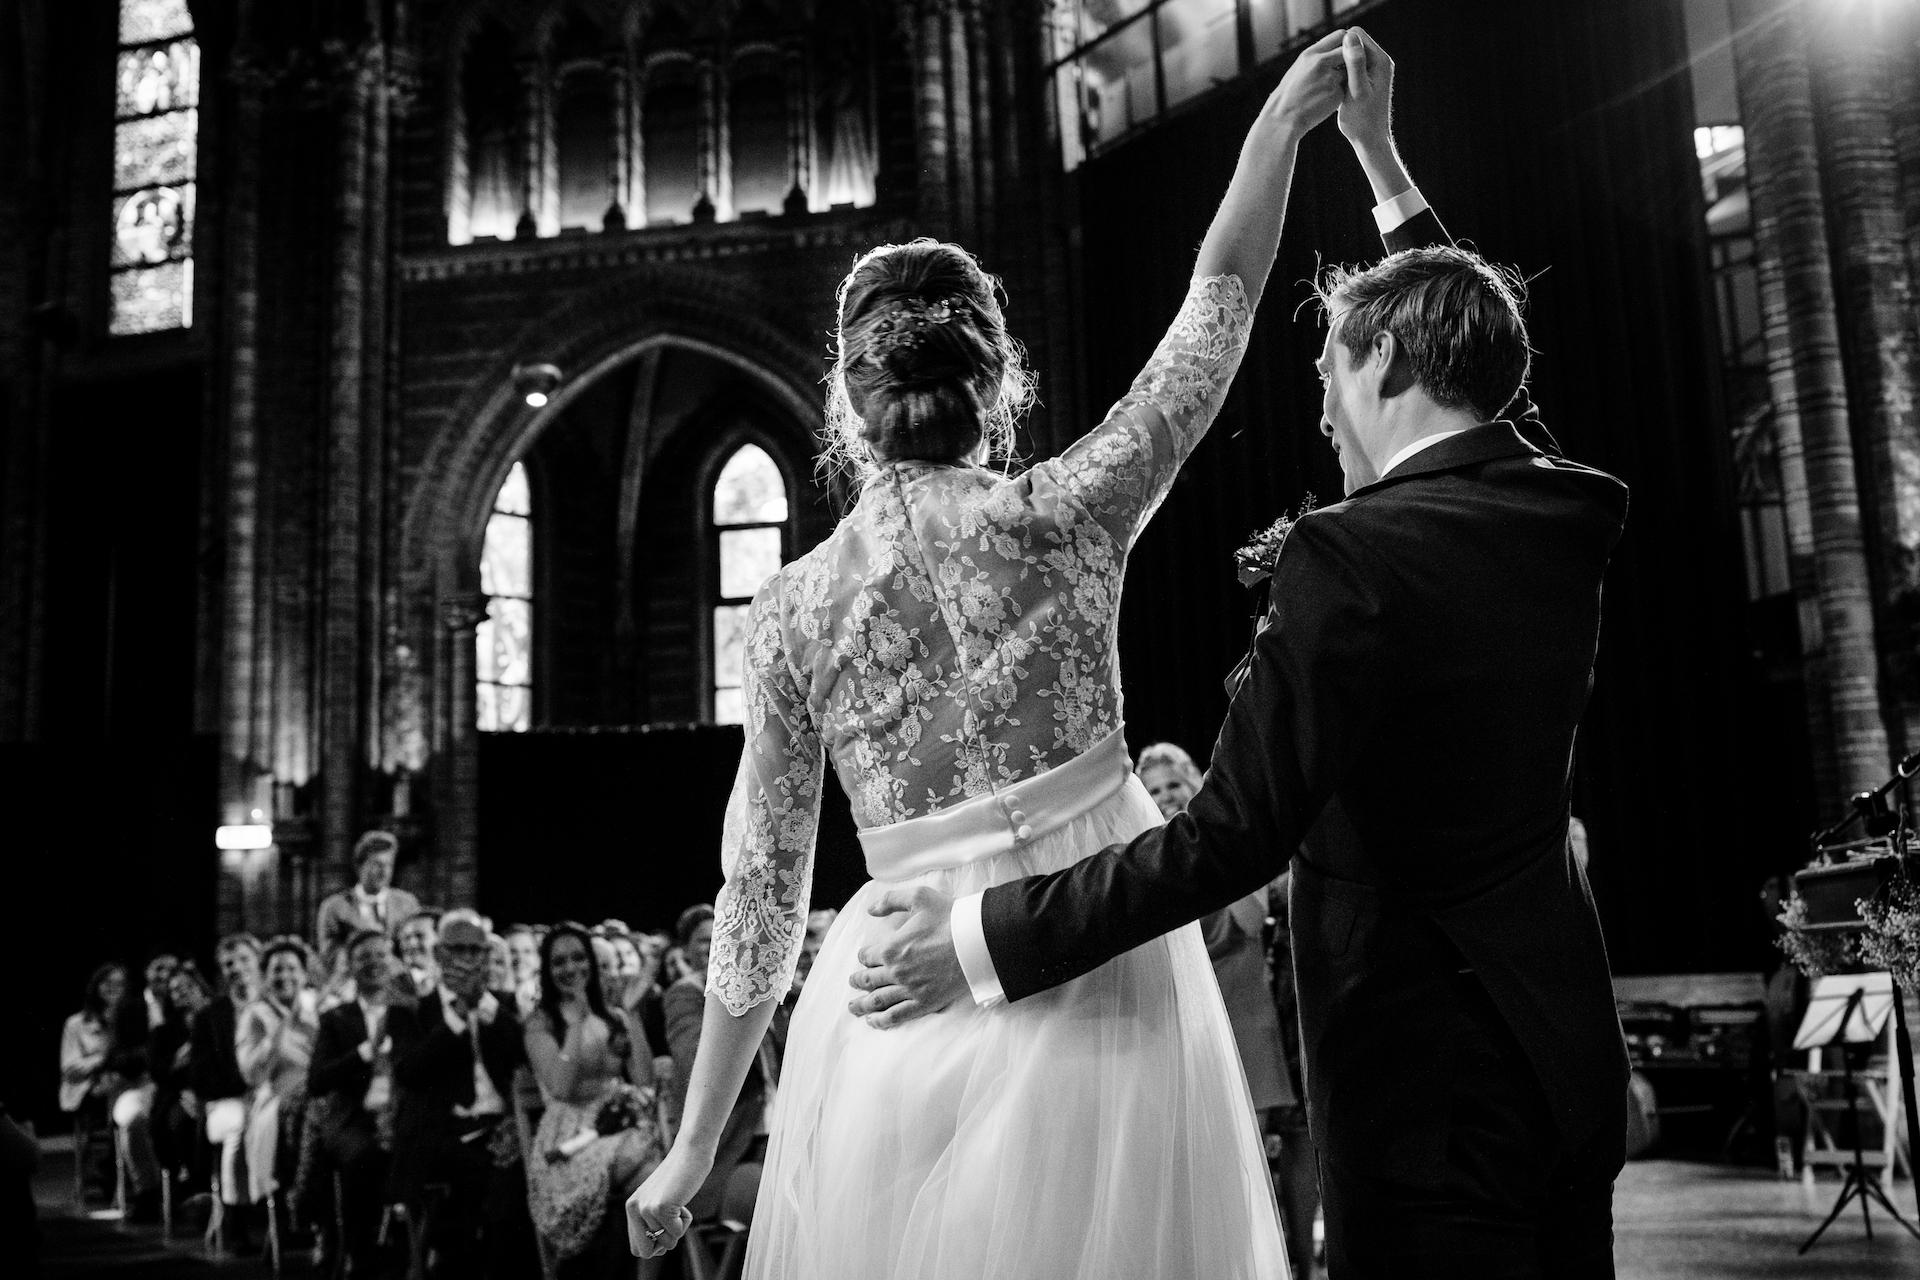 Leonard Walpot, of Utrecht, is a wedding photographer for Vondelkerk amsterdam